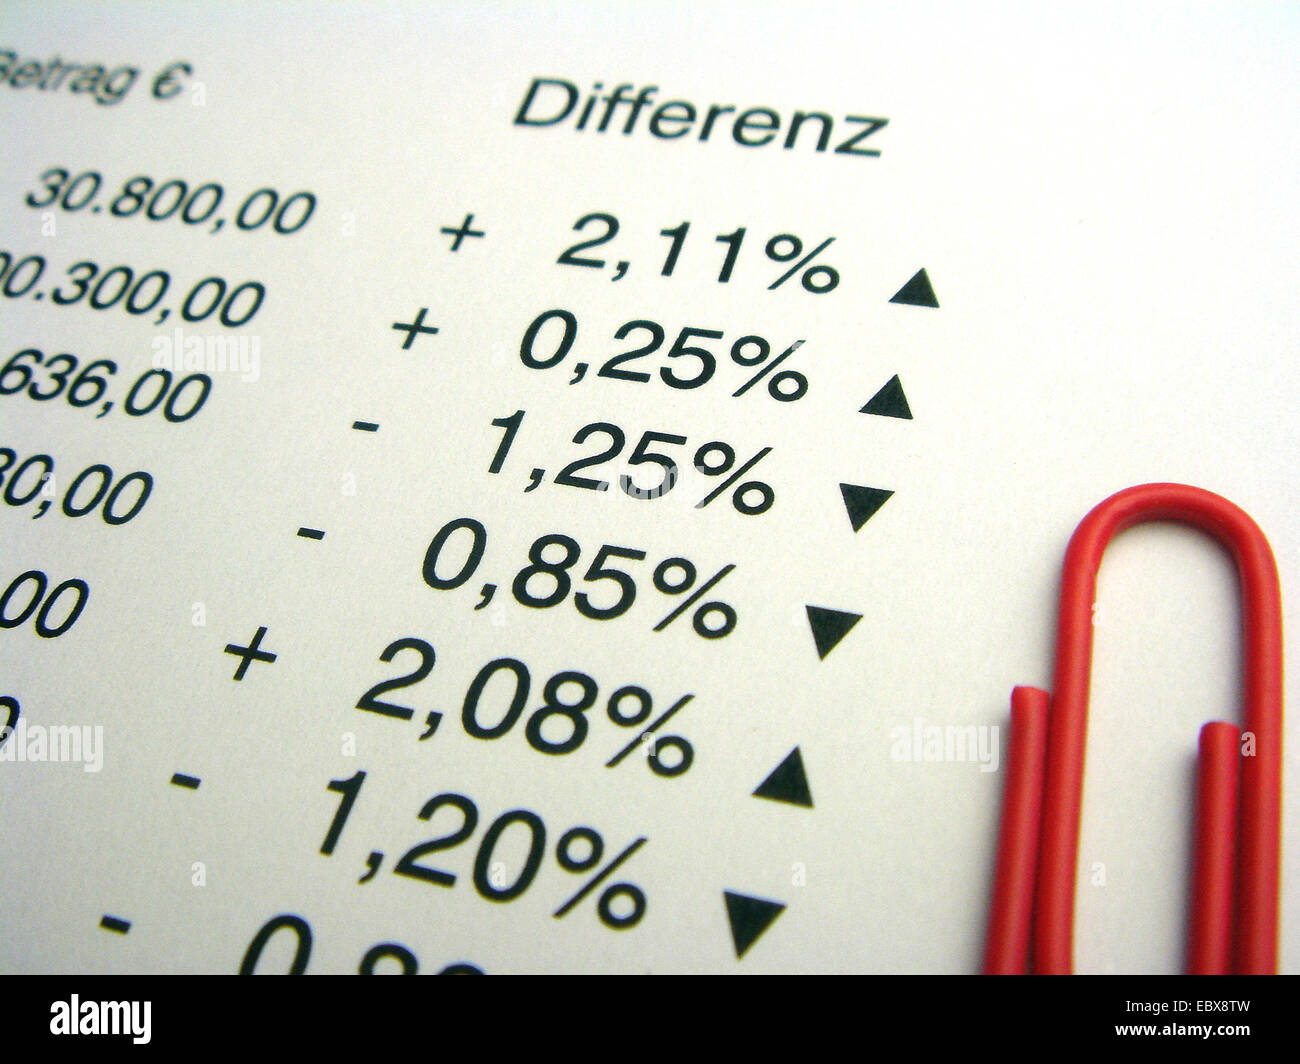 market values and red paper clip - Stock Image